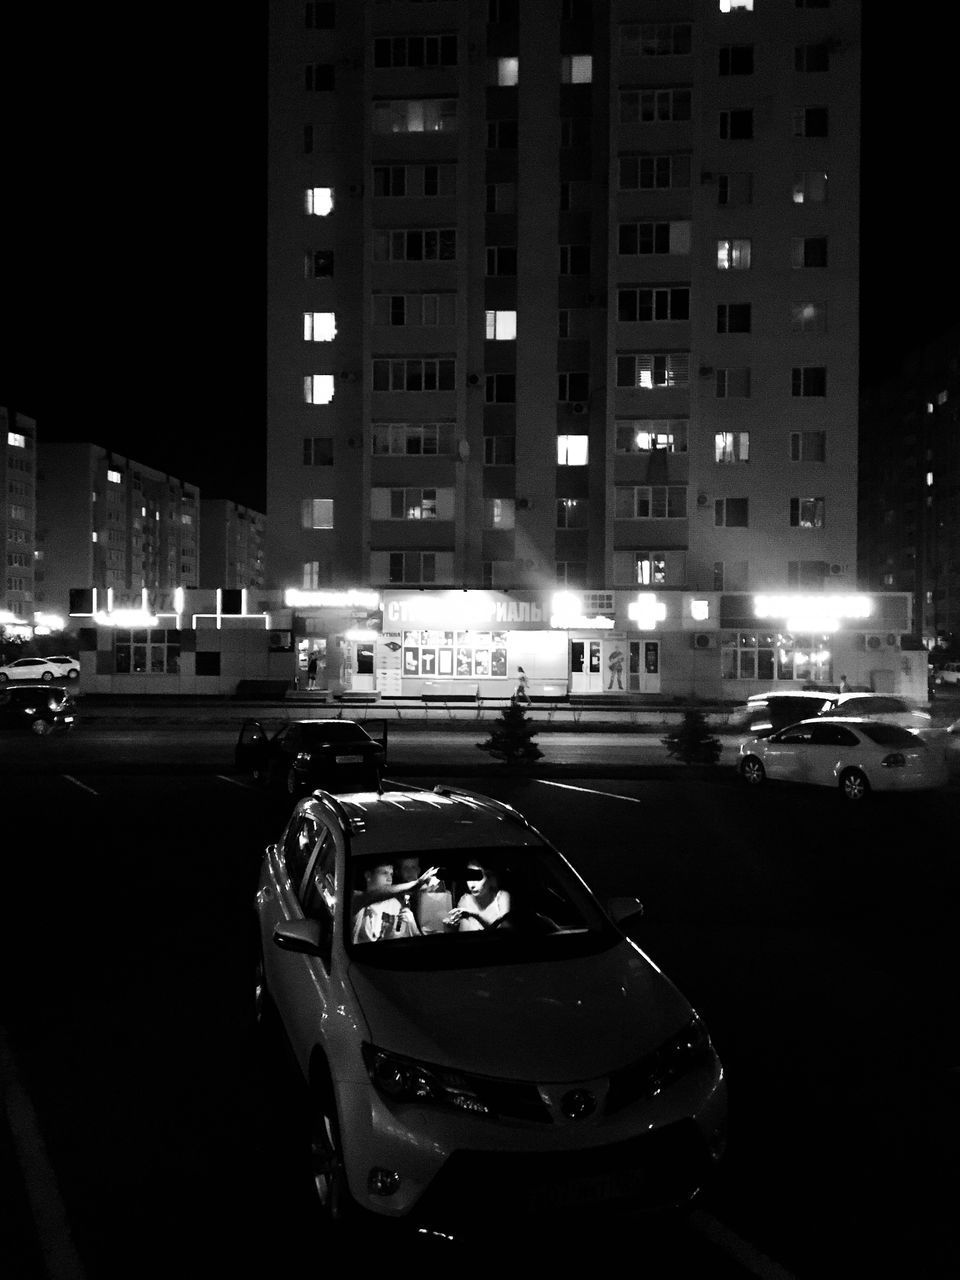 CARS ON CITY STREET BY ILLUMINATED BUILDINGS AT NIGHT